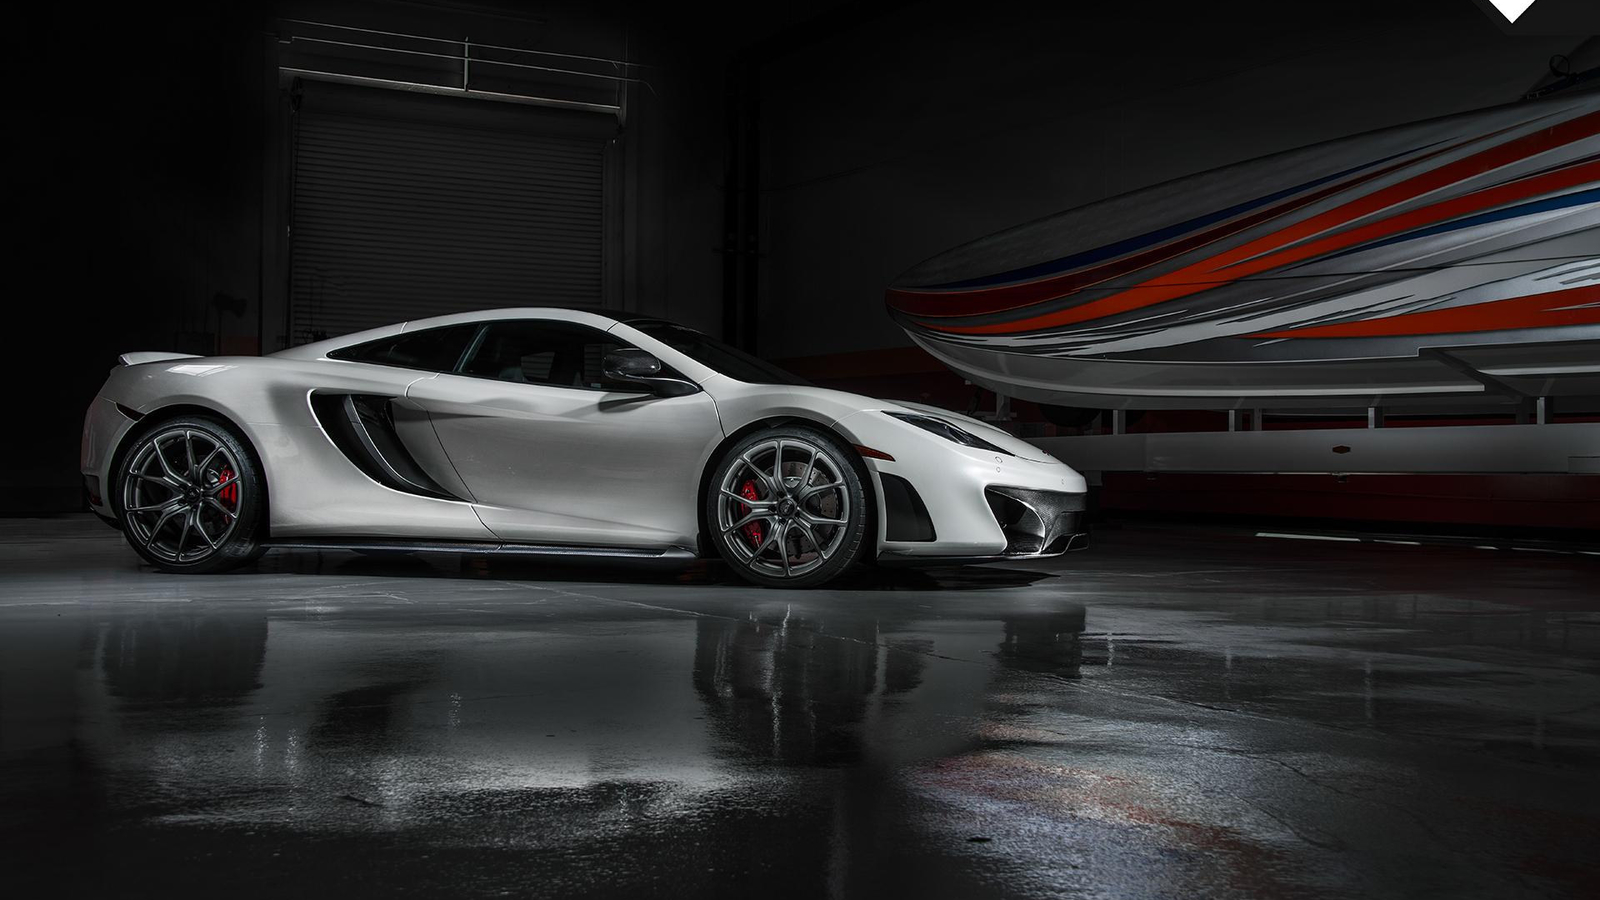 McLaren supercar wallpaper download 49758